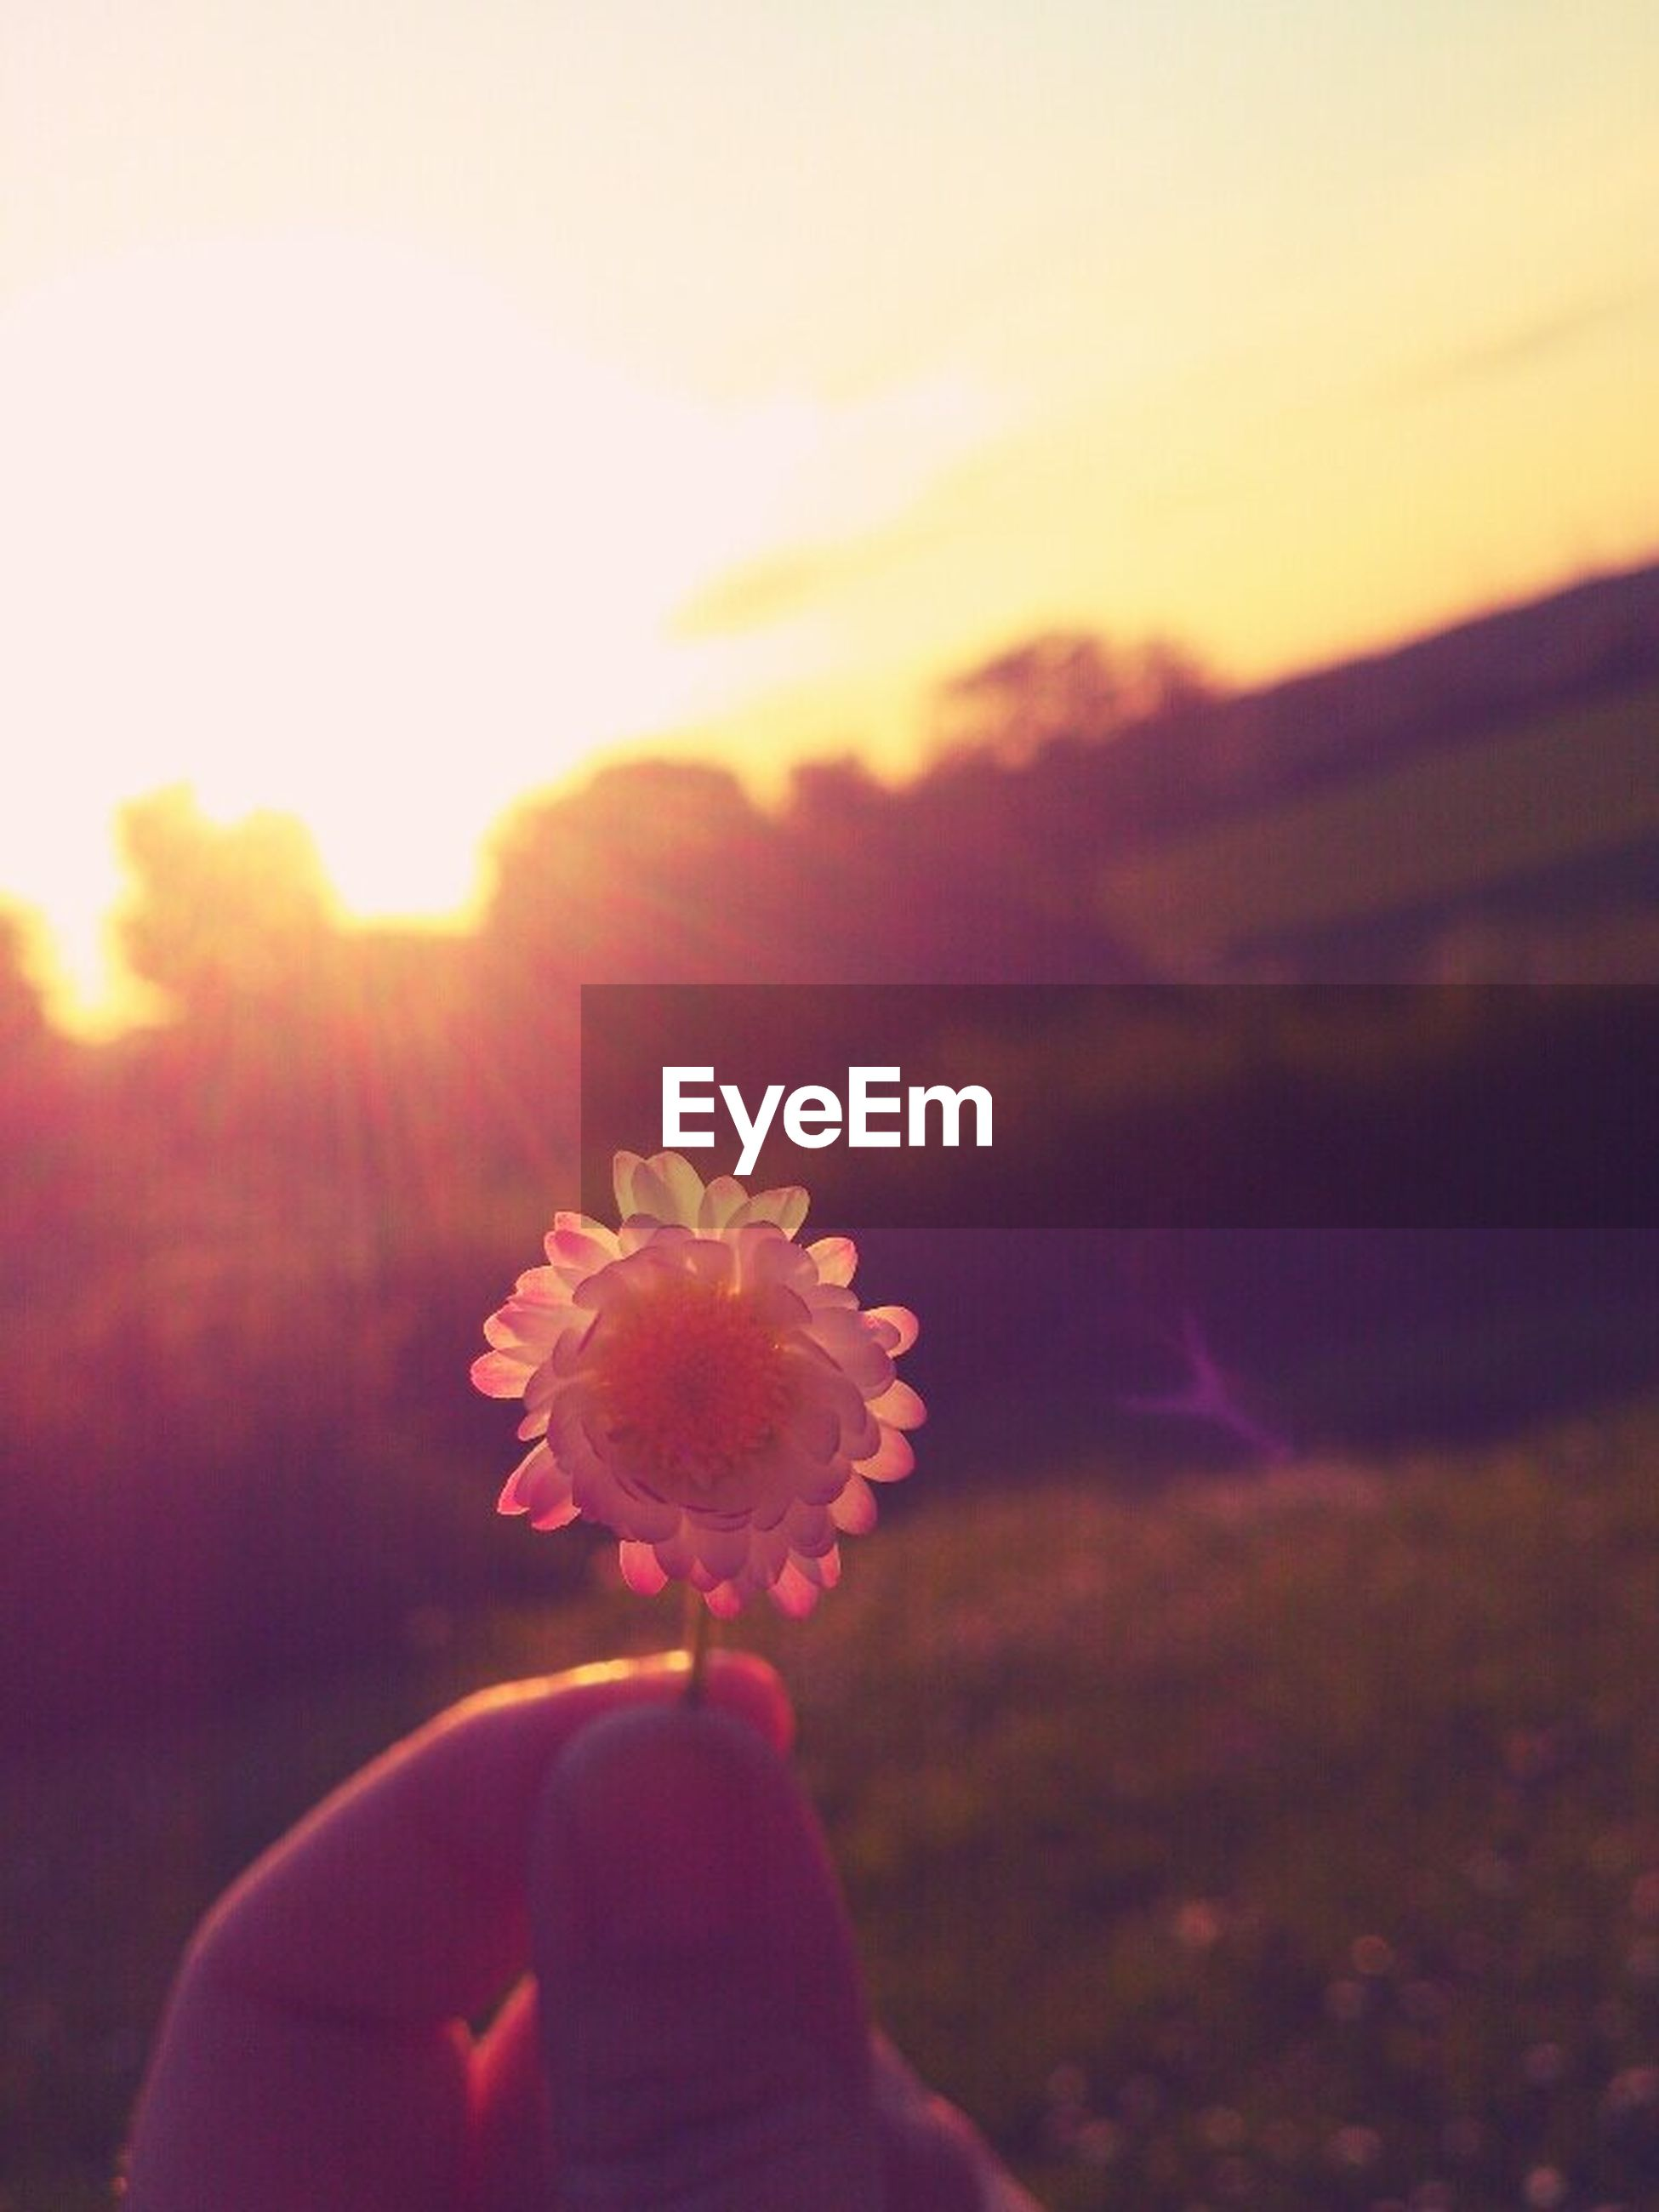 person, part of, personal perspective, holding, lifestyles, sunset, unrecognizable person, leisure activity, cropped, focus on foreground, sky, flower, beauty in nature, lens flare, nature, close-up